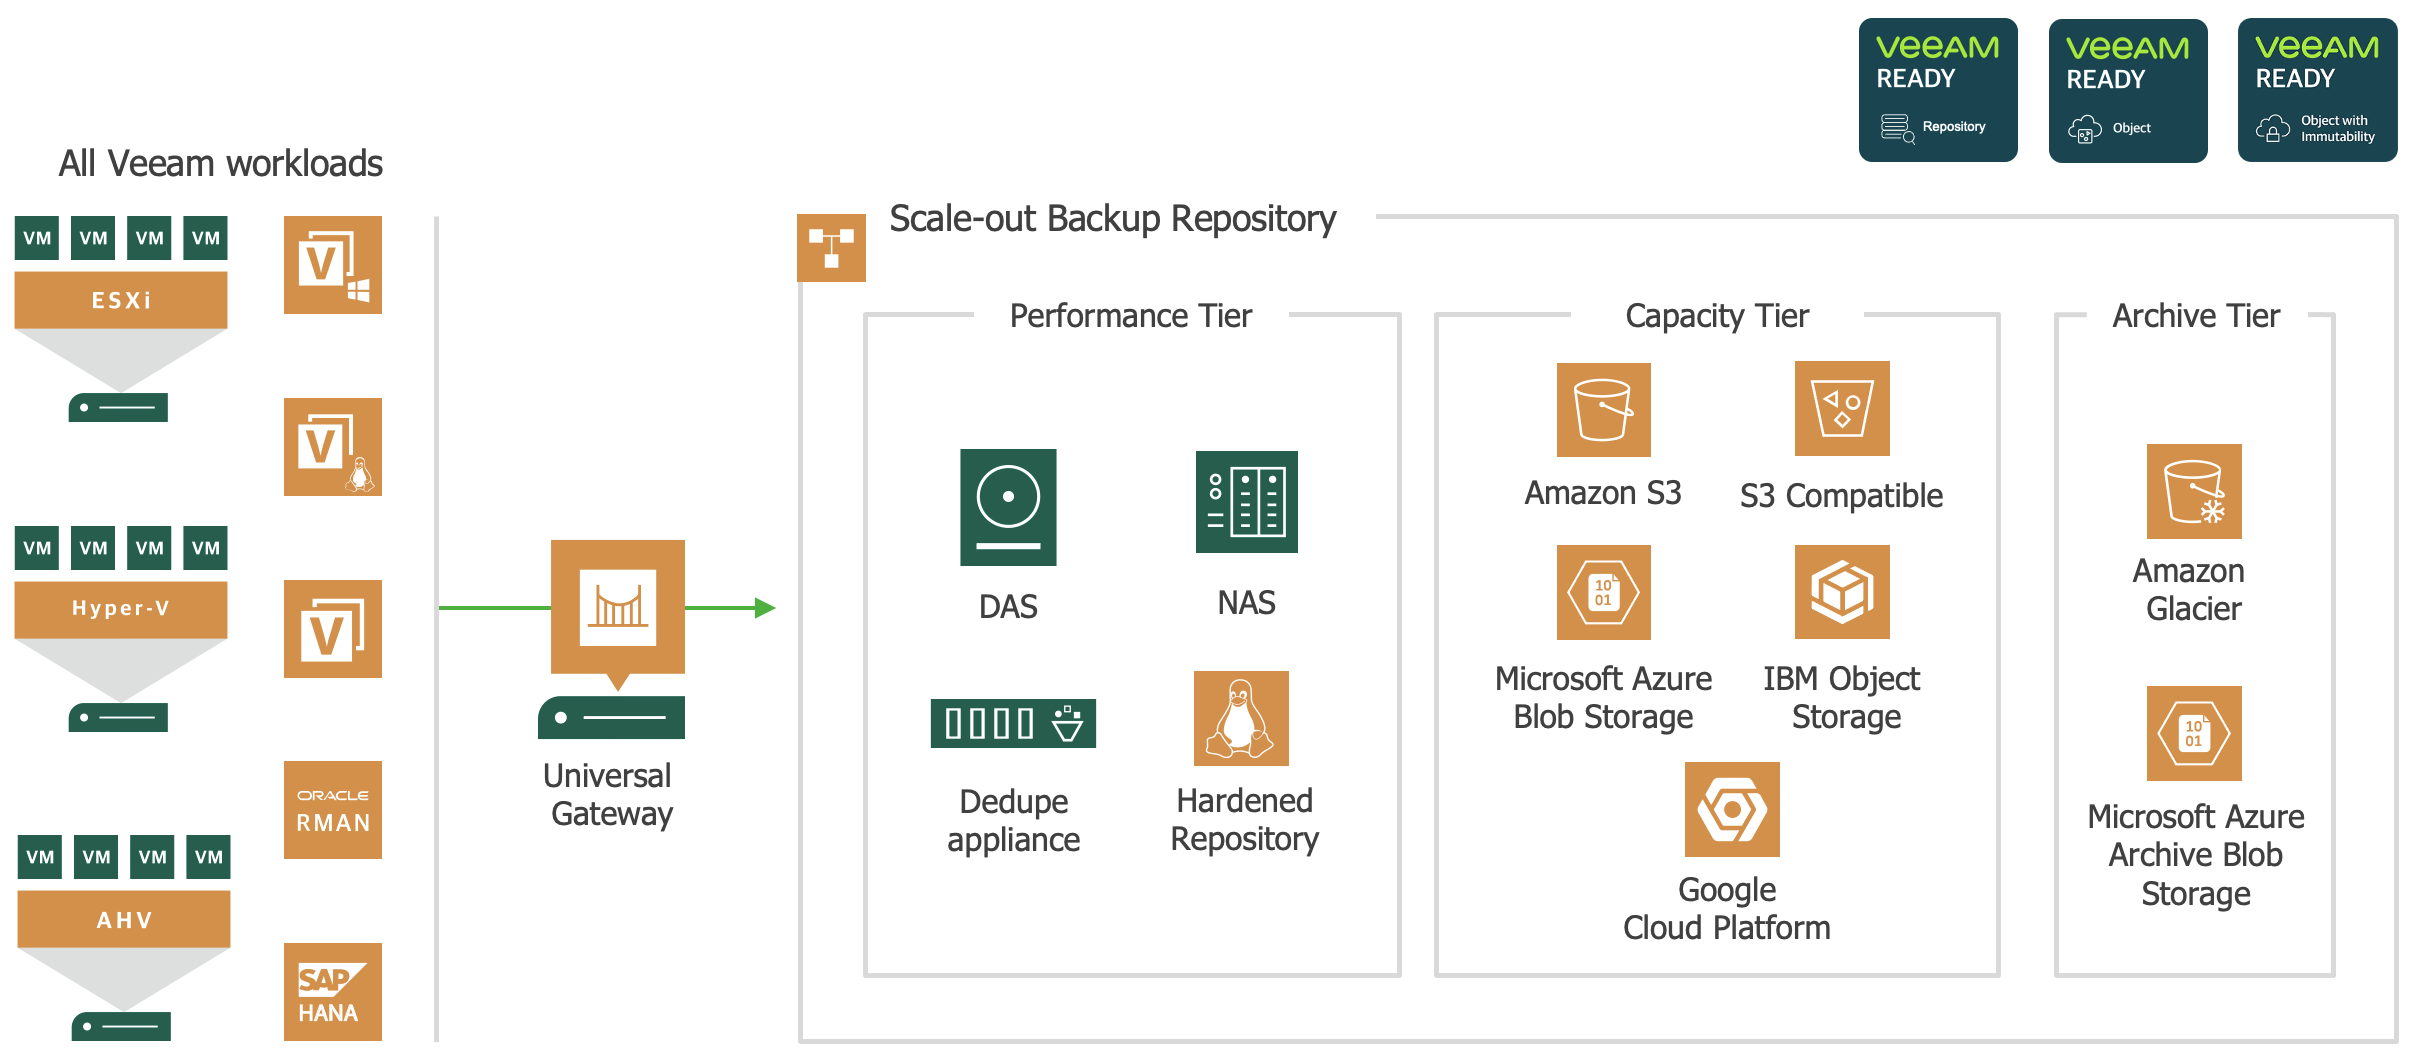 V11: Complete the Back-up Lifecycle with Veeam's SOBR Archive Tier